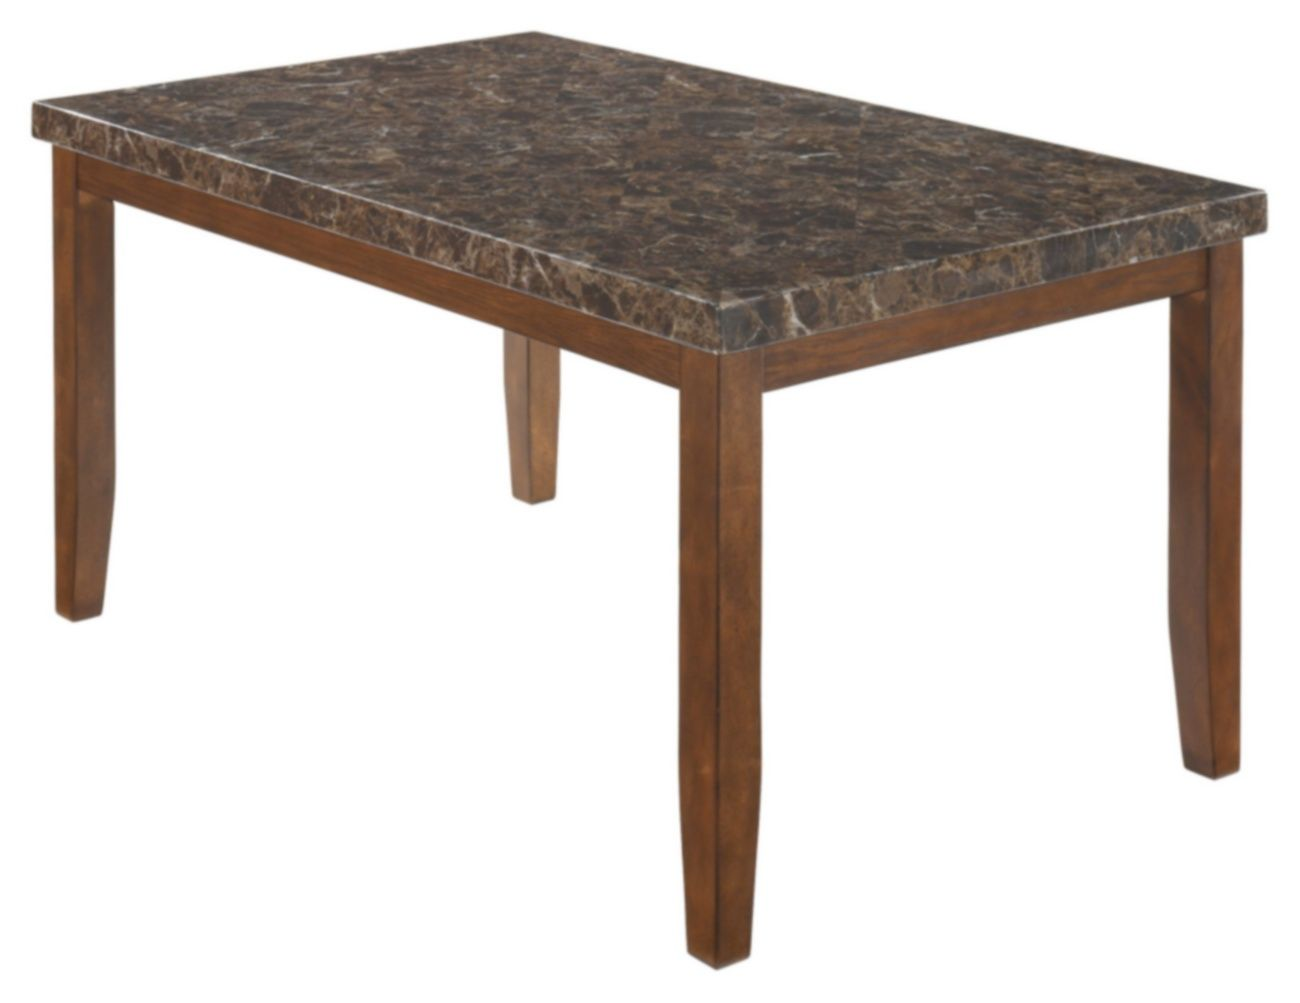 Signature Design Lacey Rectangular Dining Room Table Ashley Furniture D328 25